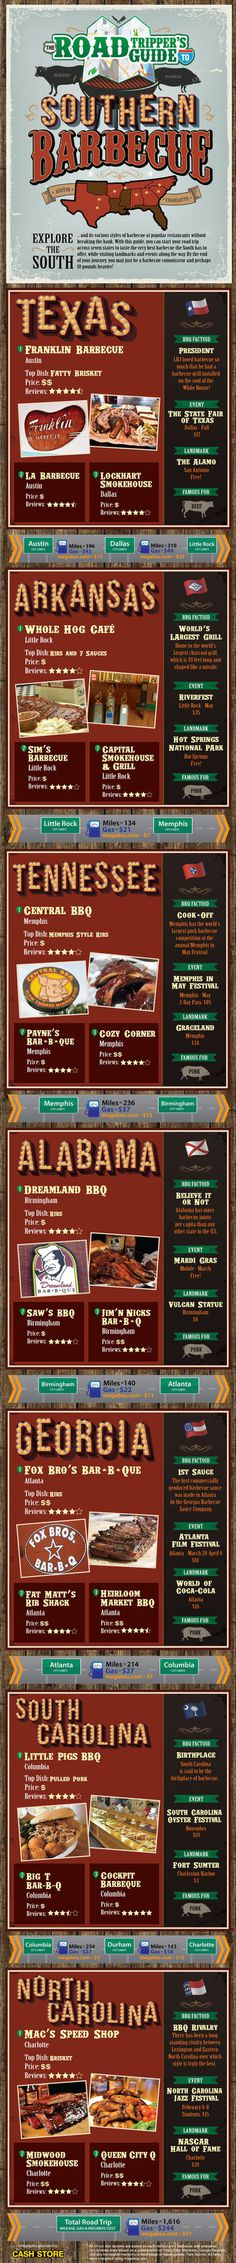 The Road Tripper's Guide to Southern Barbecue #infographic #food #bbq #road trip #austin #texas #north carolina #dallas #memphis #vacation #